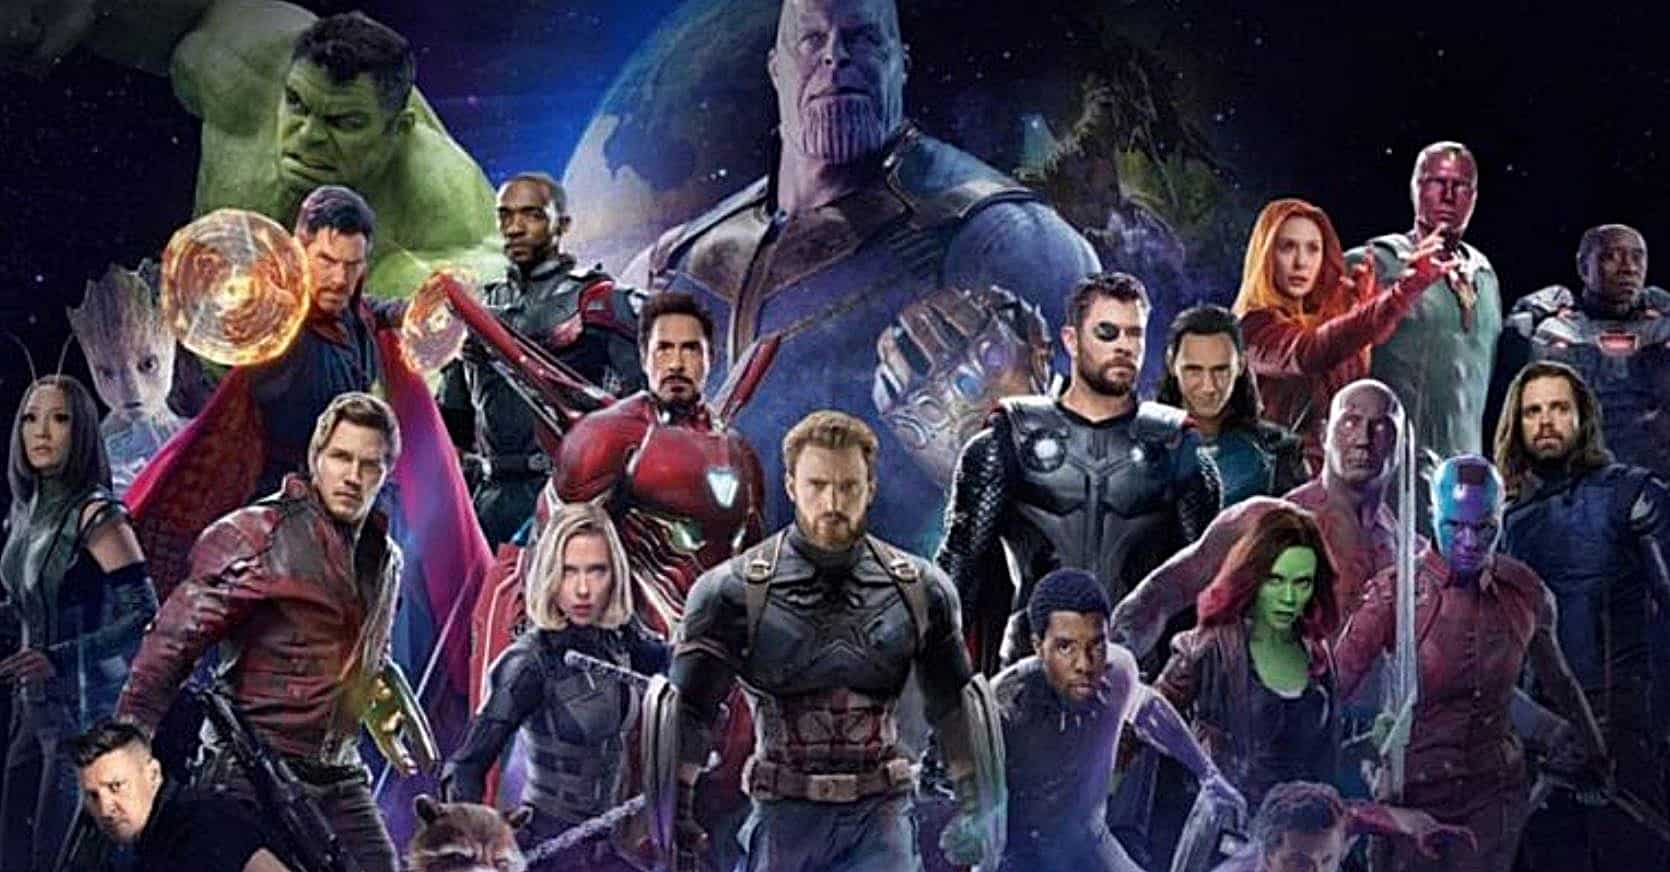 marvel reportedly planning bold marketing strategy for avengers 4